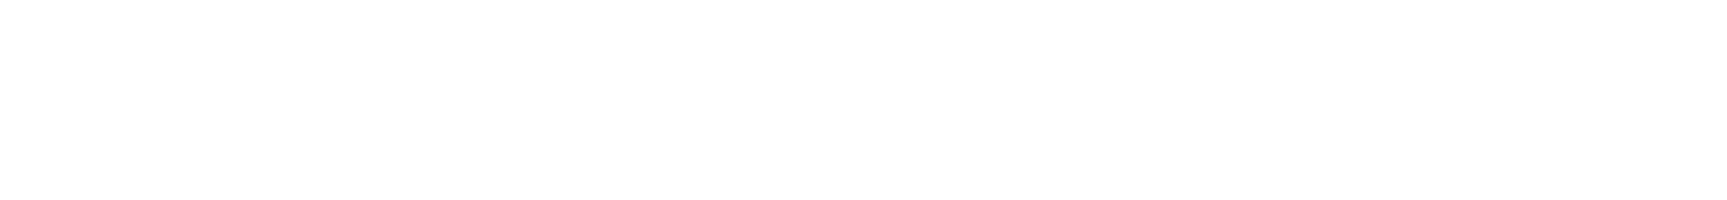 Information Technology Council, The University of Oklahoma website wordmark